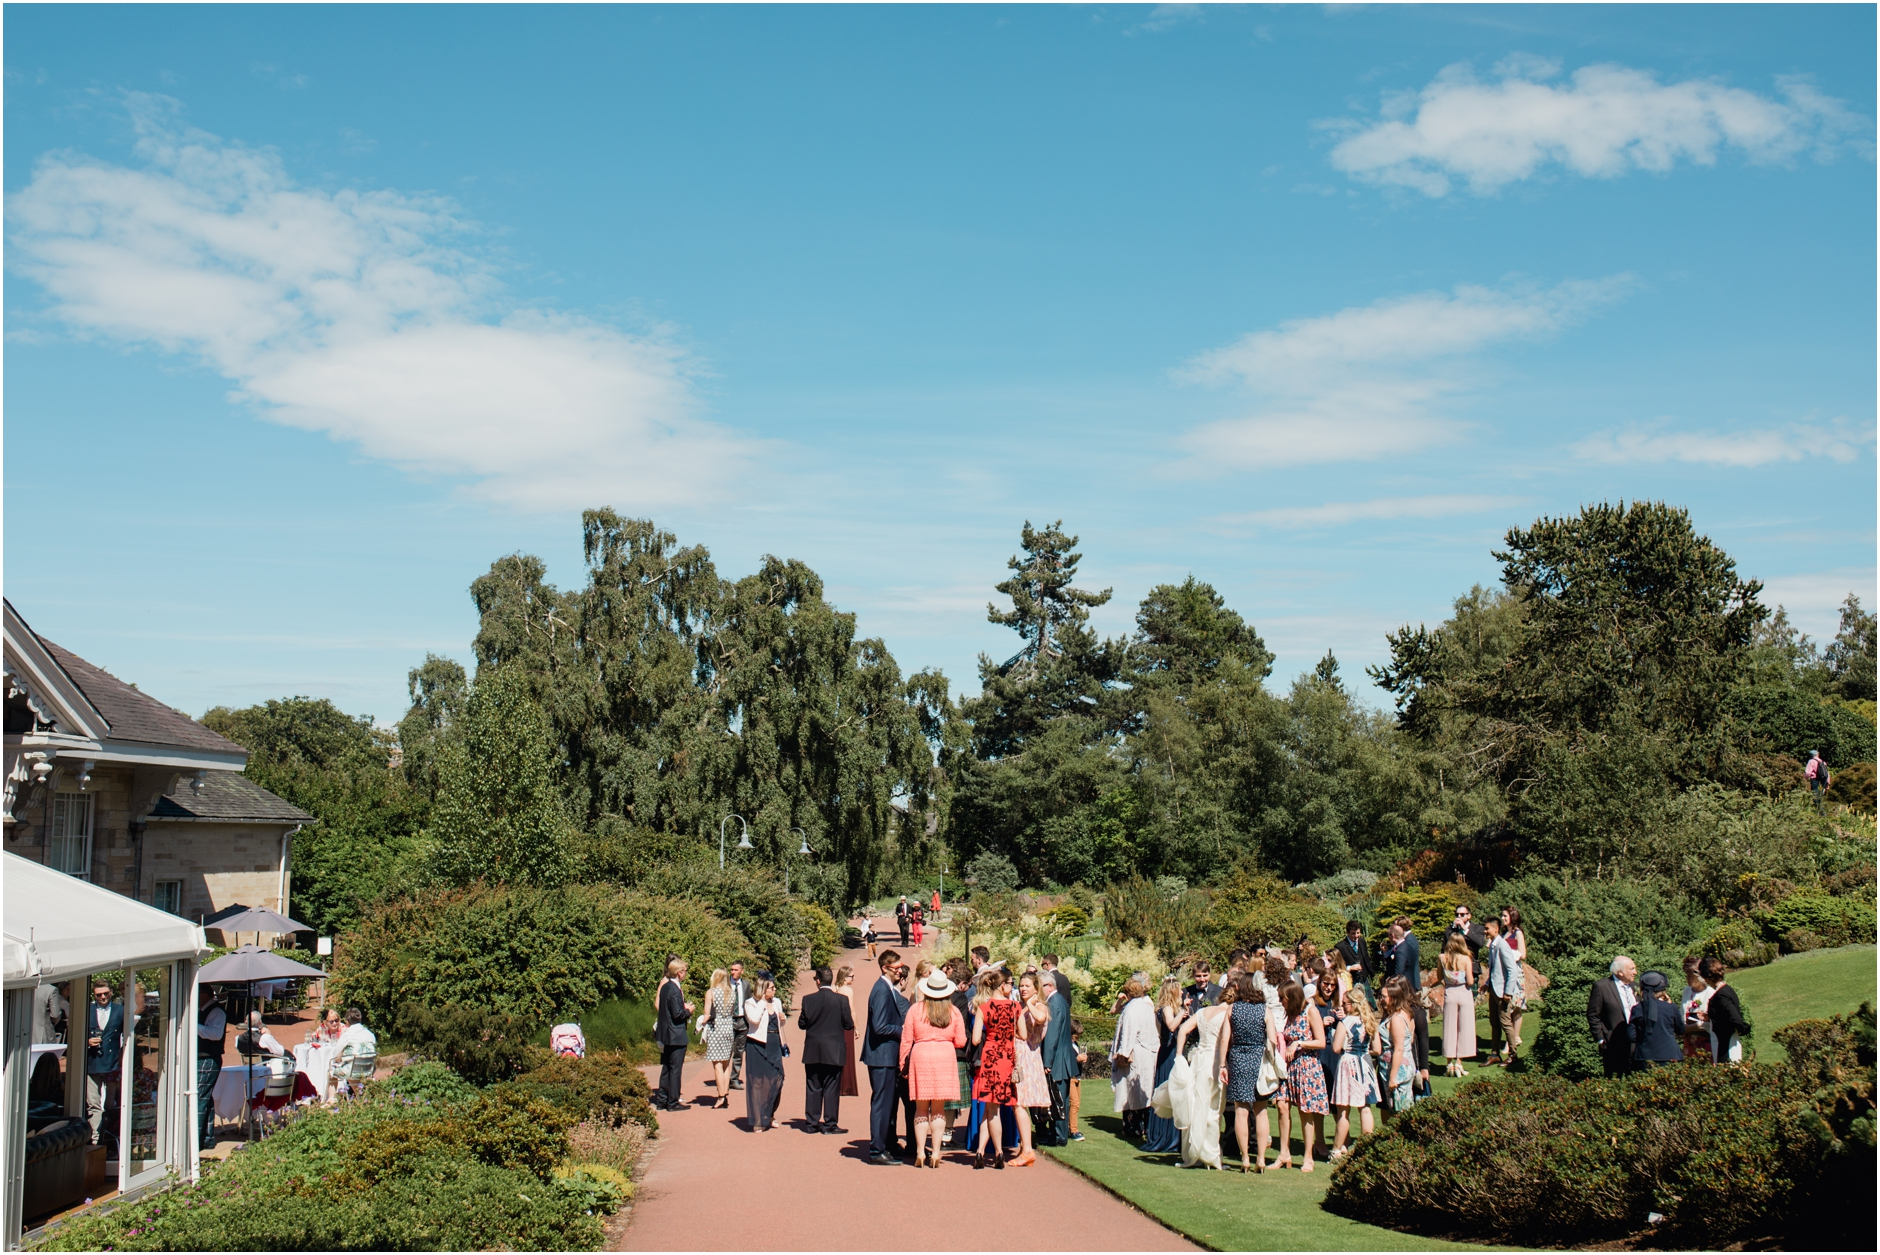 royal botanical gardens edinburgh wedding venue